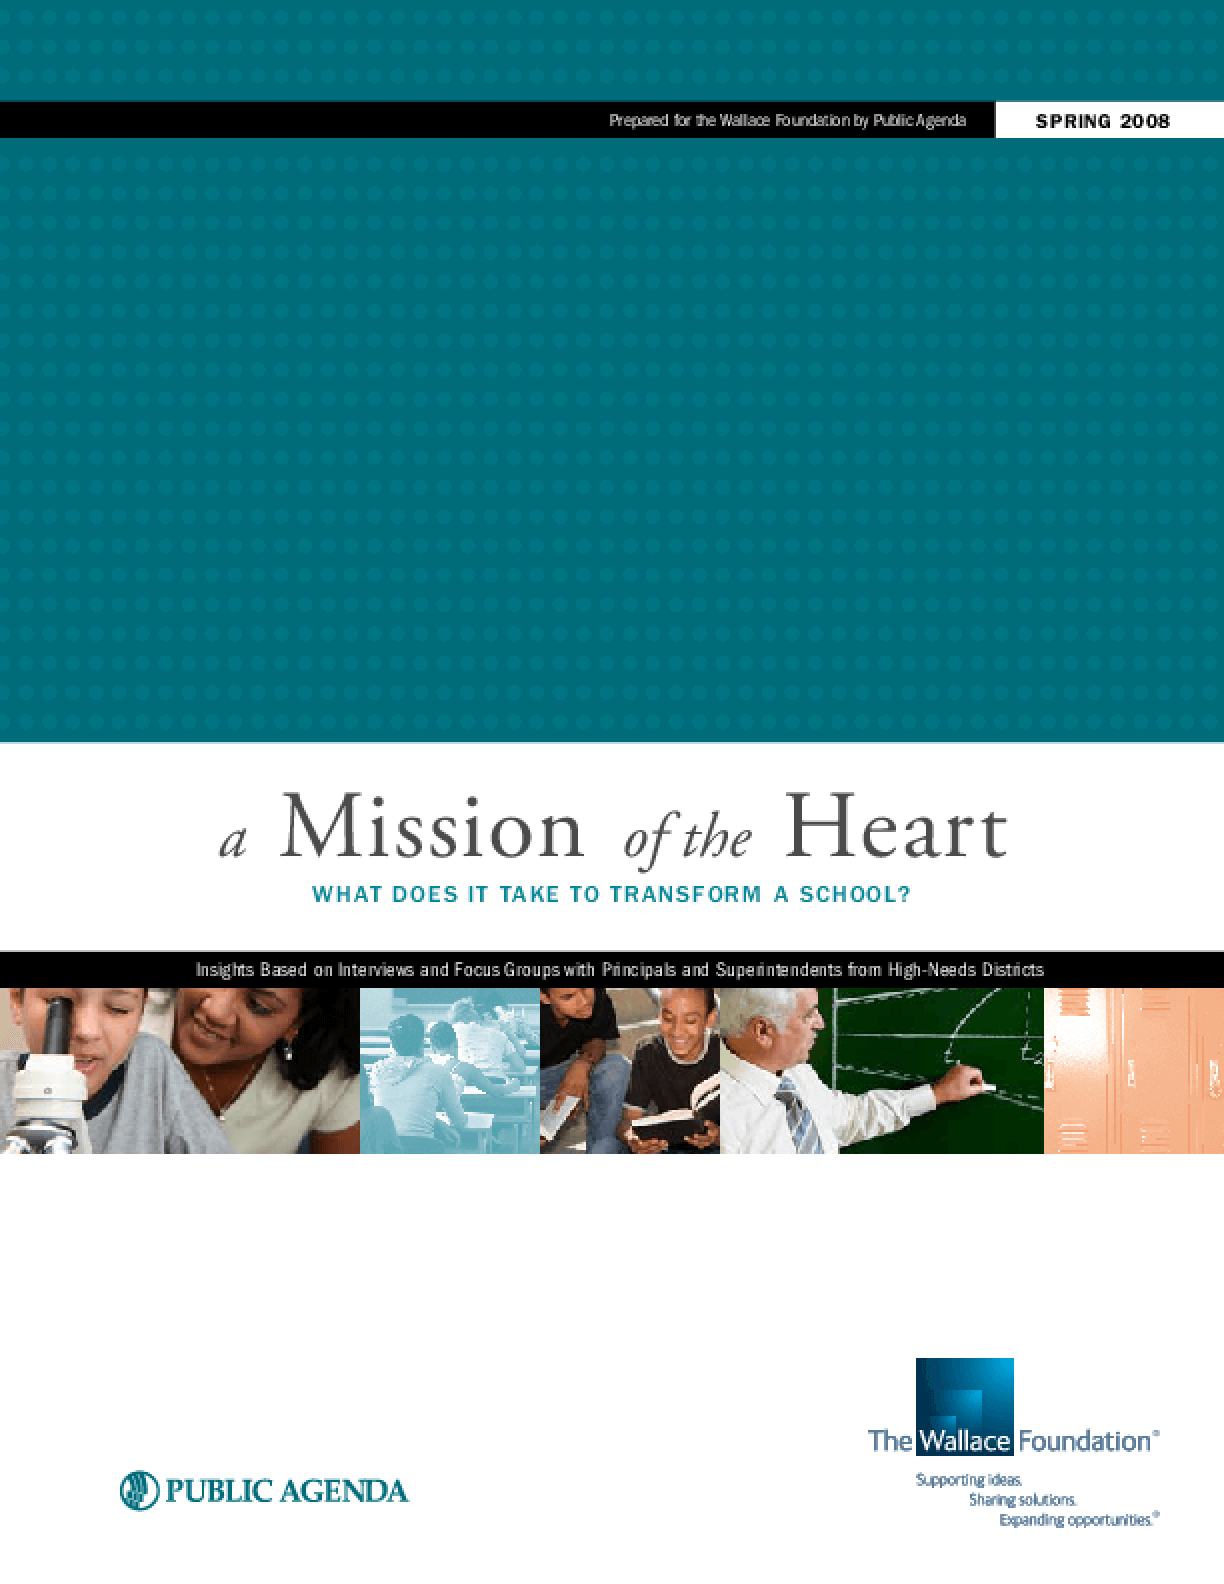 A Mission of the Heart: What Does It Take to Transform a School? 2008